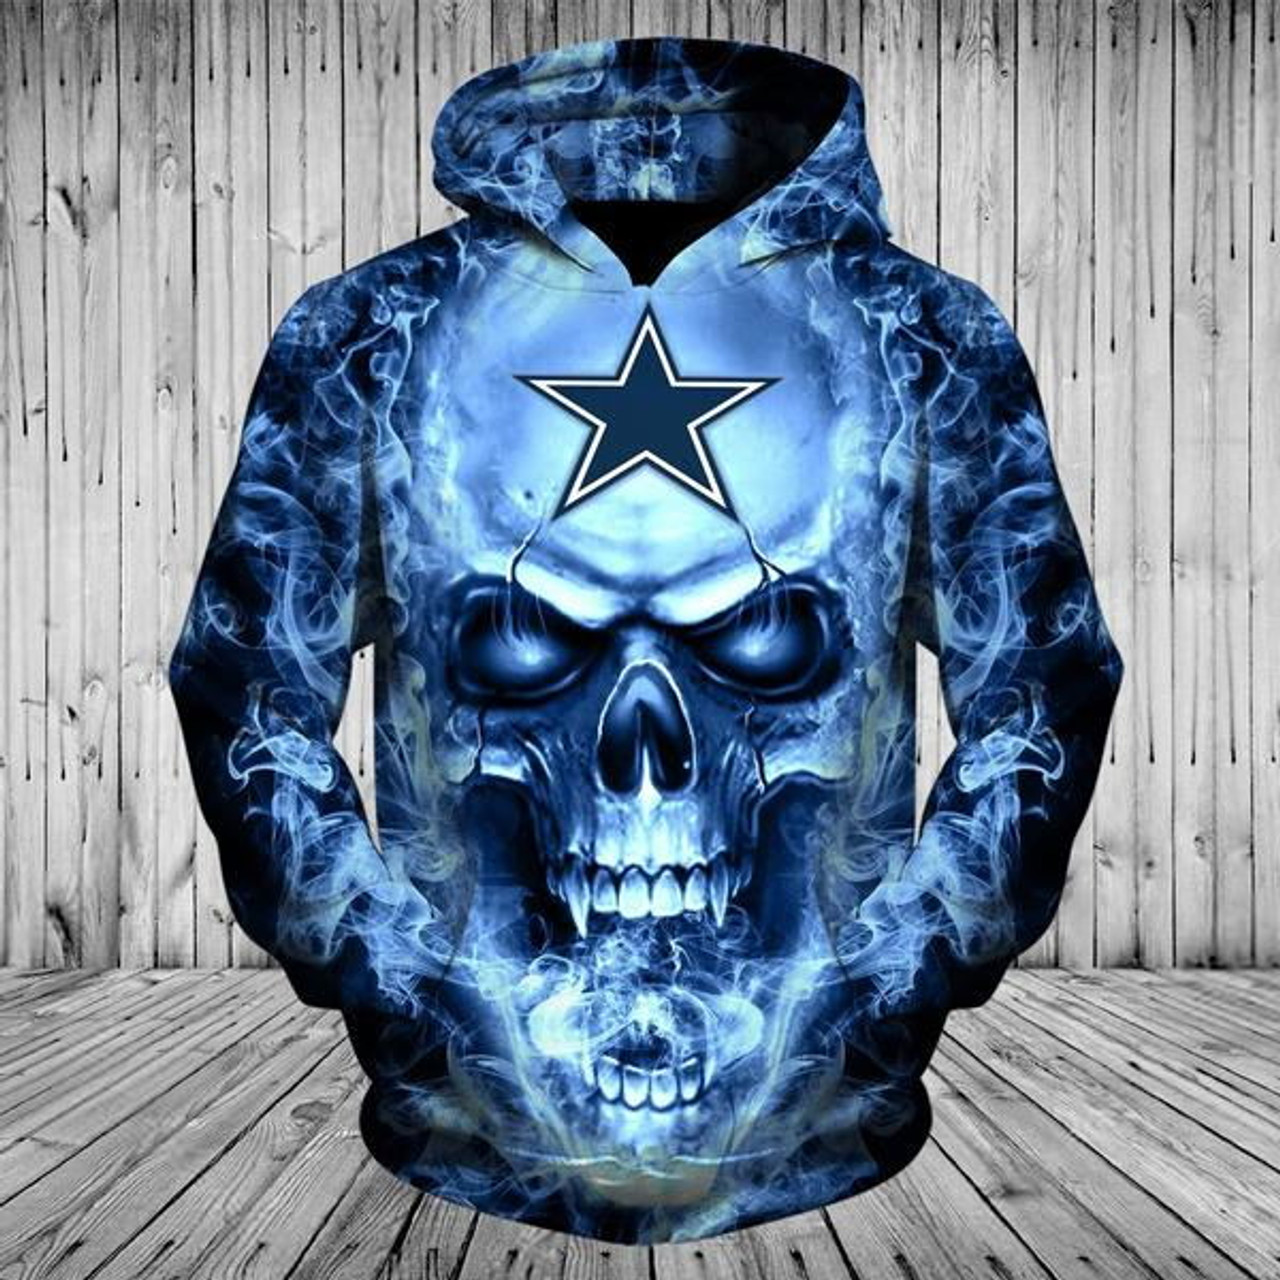 **(OFFICIAL-N.F.L.DALLAS-COWBOYS-PULLOVER-HOODIES/CUSTOM-3D-NEON-COWBOYS-BLUE-SMOKING-SKULL,PREMIUM-3D-GRAPHIC-PRINTED-COWBOYS-LOGO/DOUBLE-SIDED-WARM-PULLOVER,N.F.L.COWBOYS-TEAM-COLORED-HOODIES)**